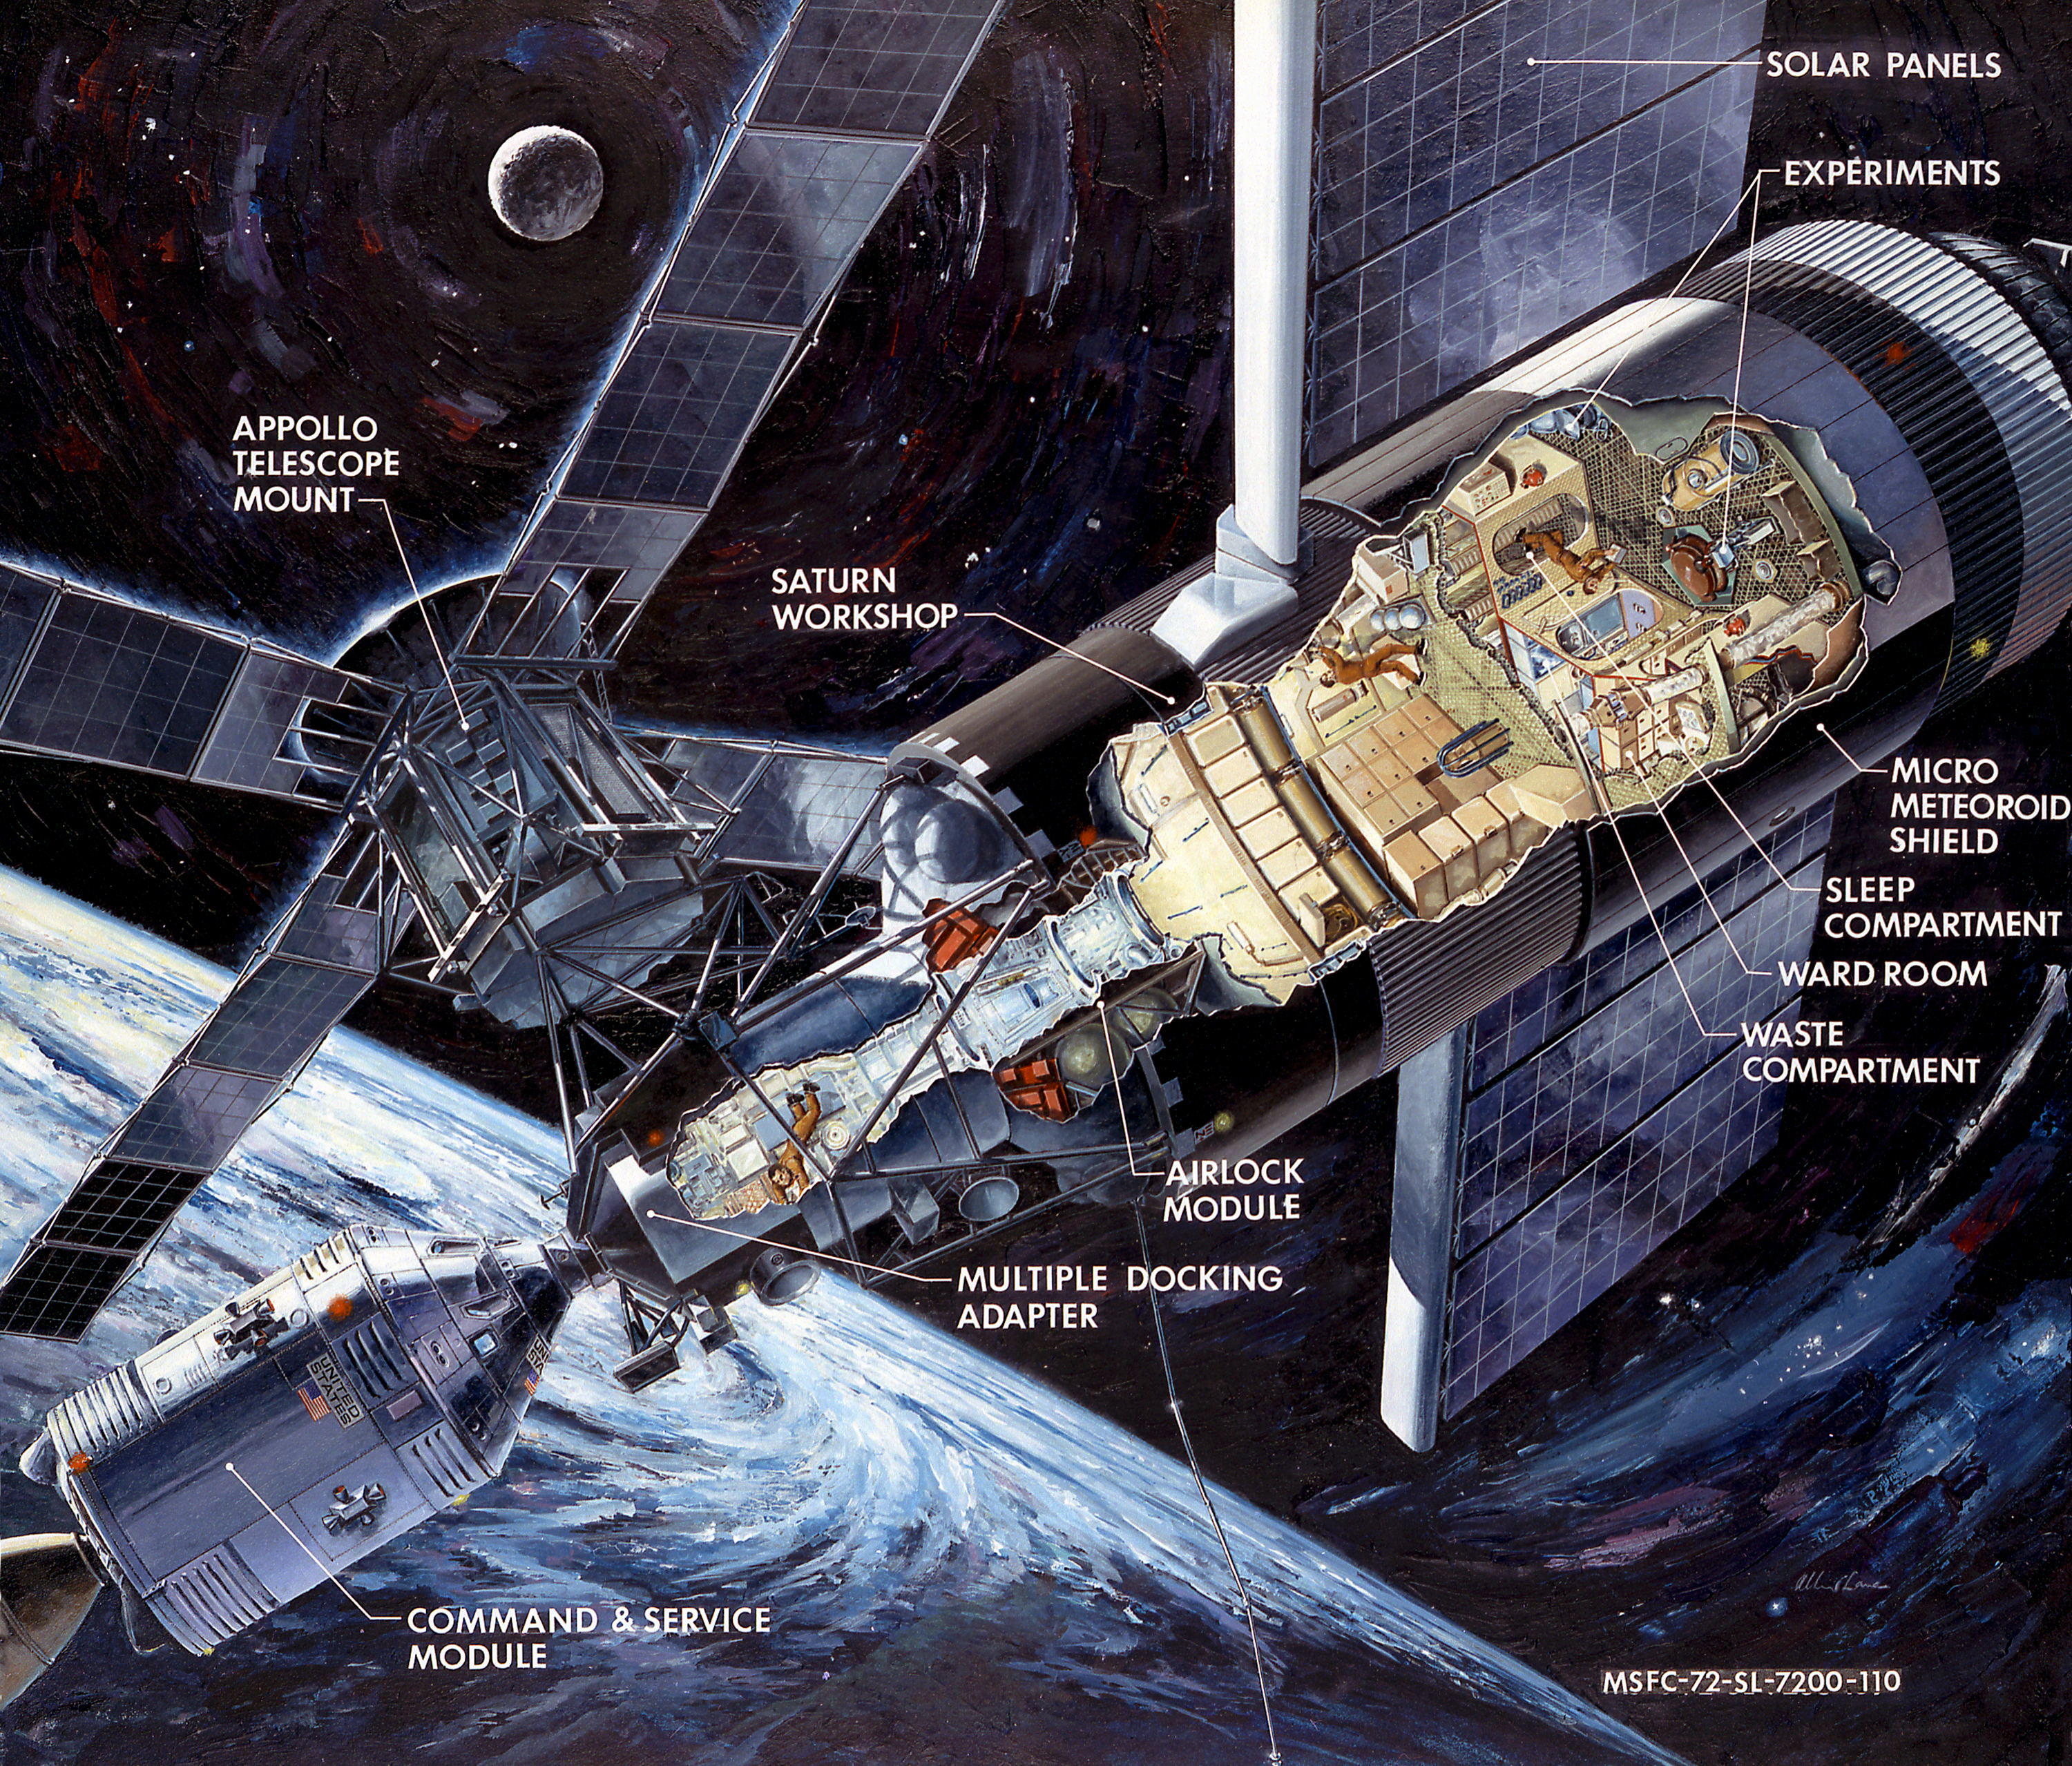 Skylab_illustration.jpg